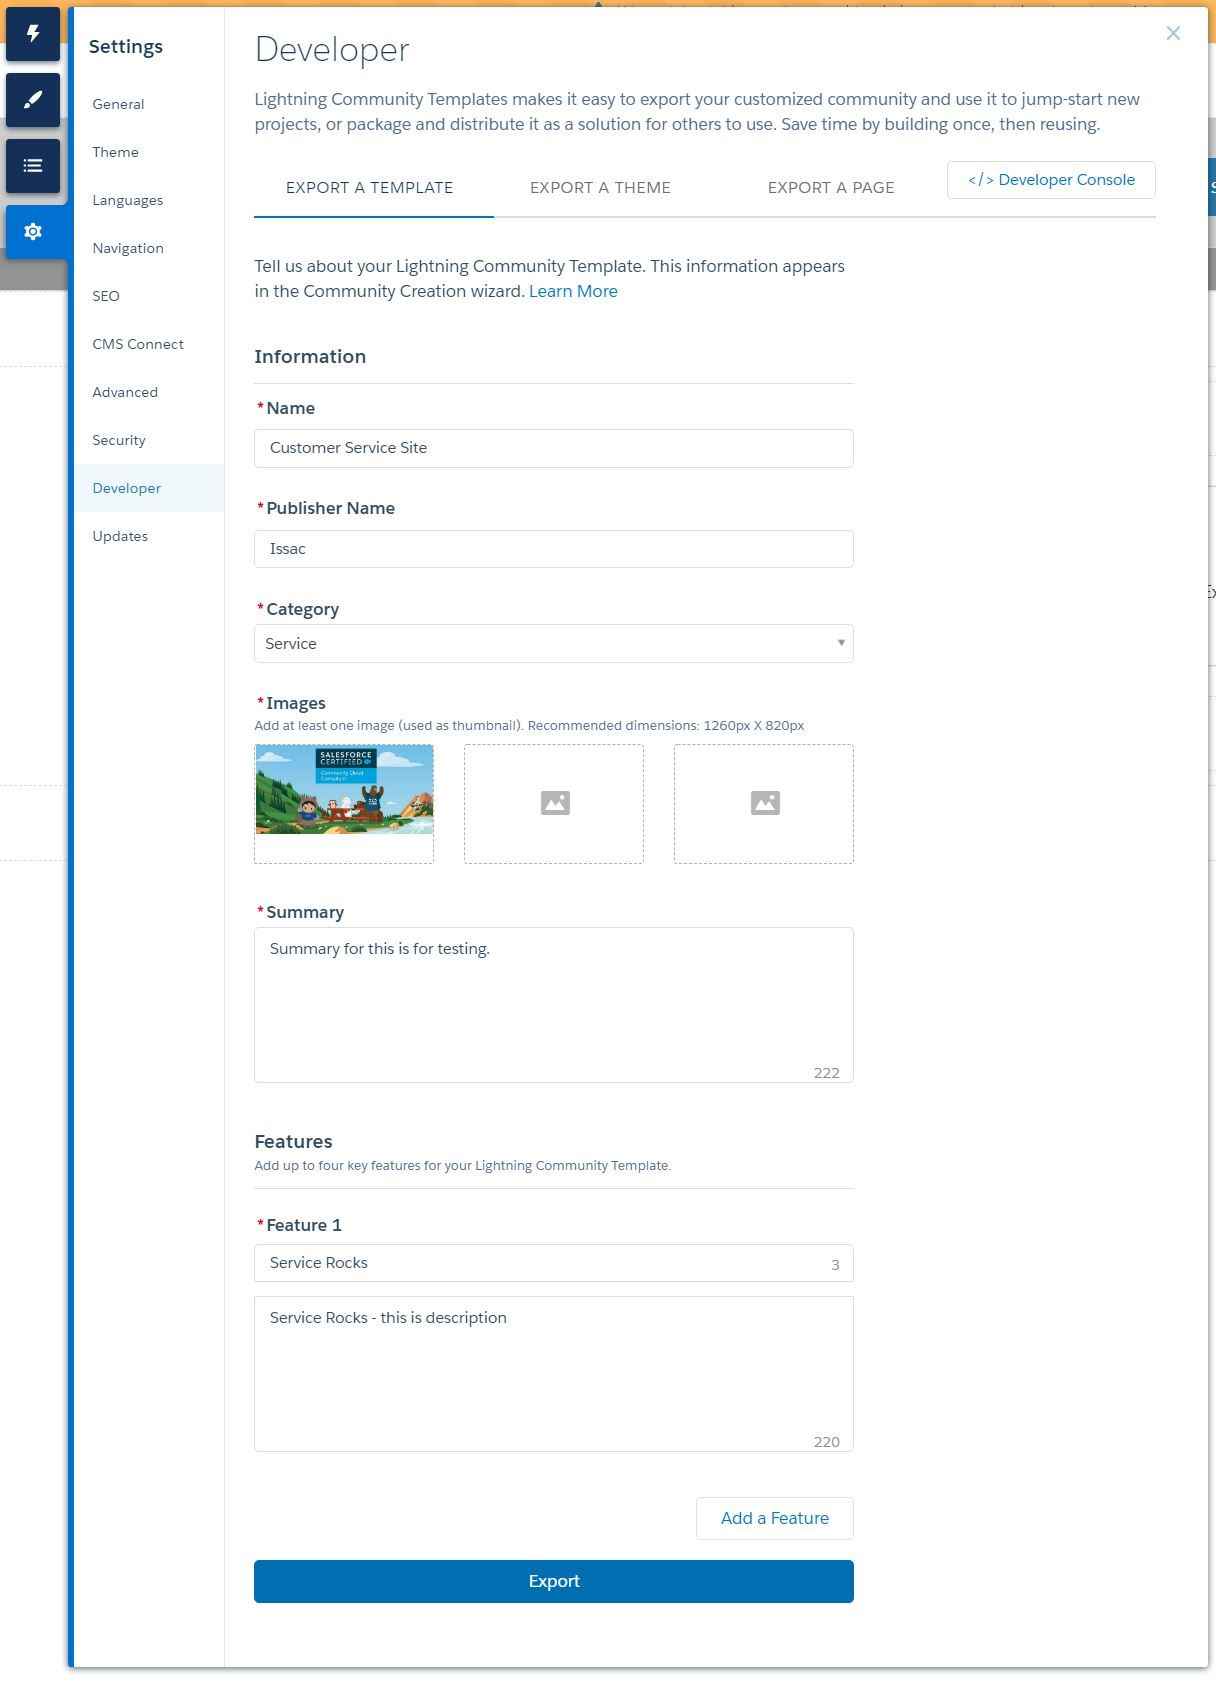 experience-builder-settings-developer-export-a-template